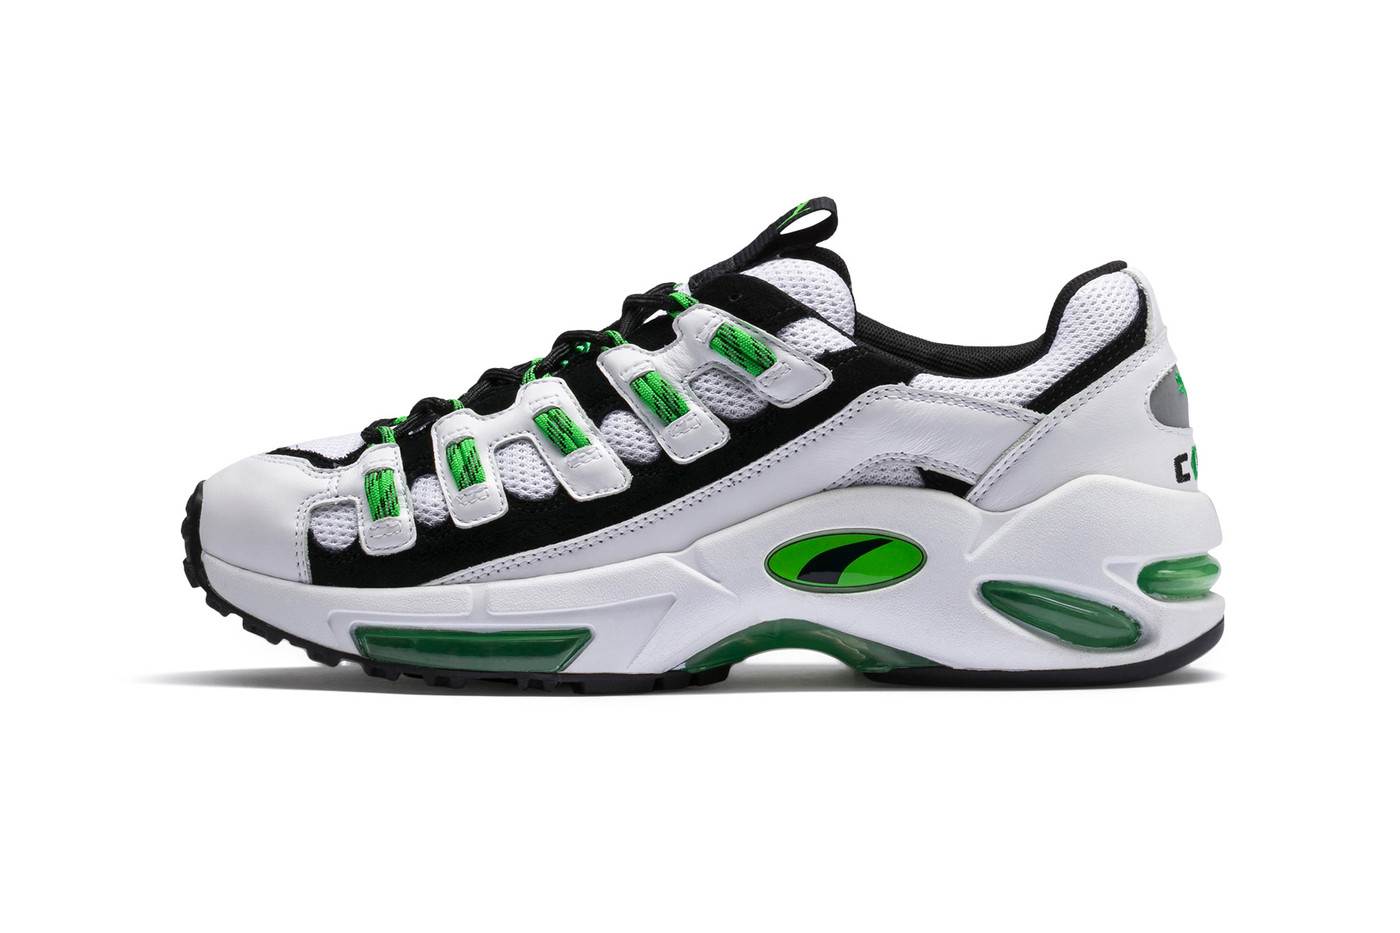 puma-cell-endura-release-white-surf-the-web-1